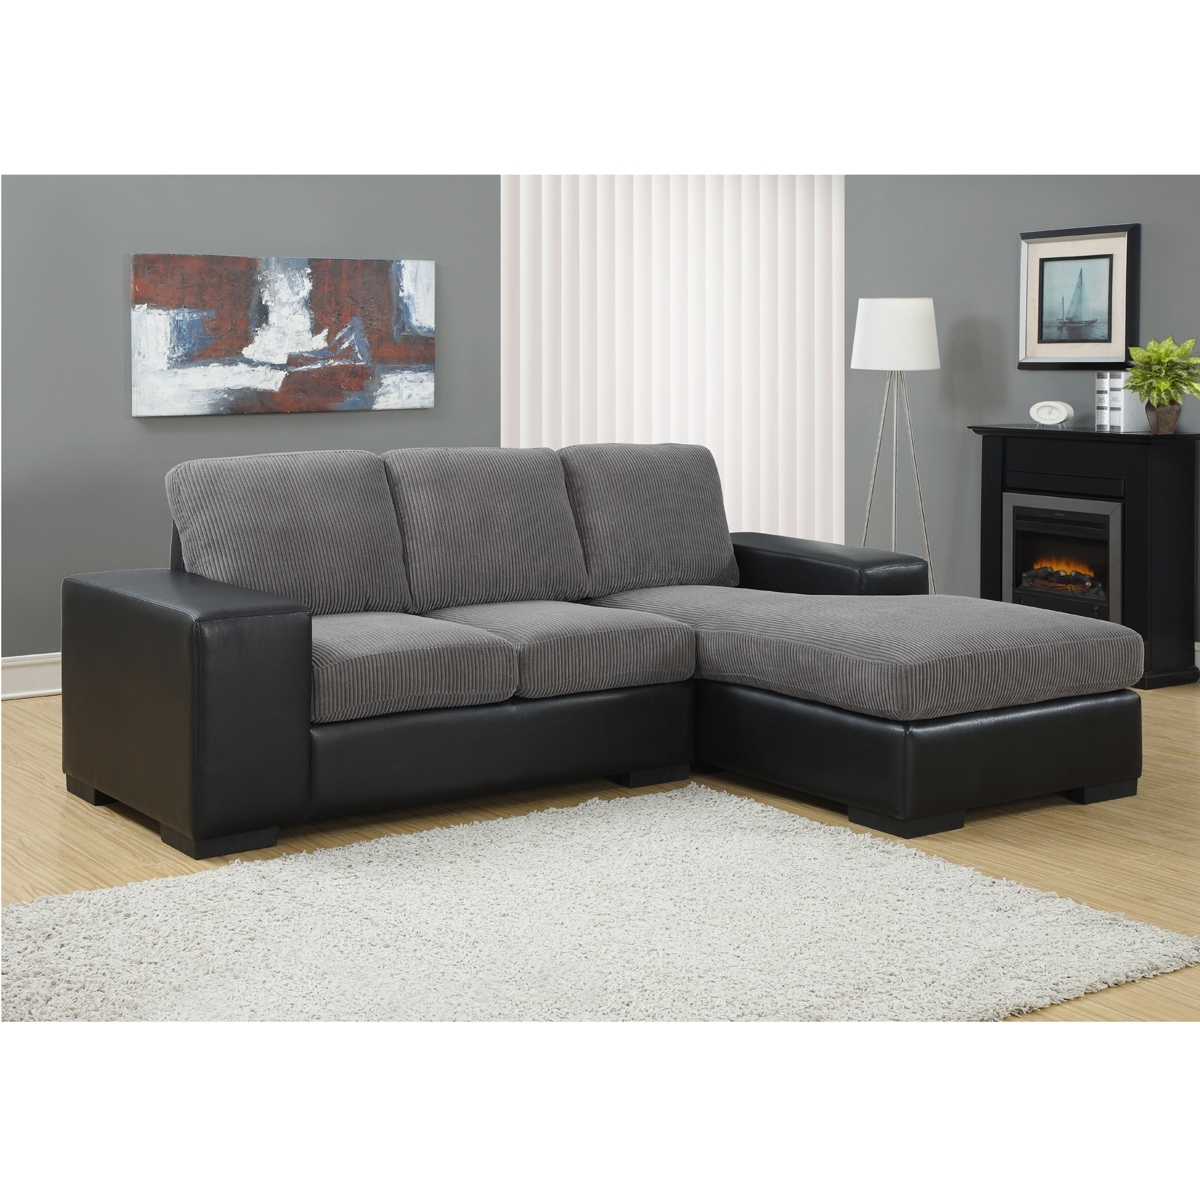 Jacob Corduroy Sofa In Grey & Black | Modern Sectional Sofas With Sectional Sofas For Condos (View 3 of 10)